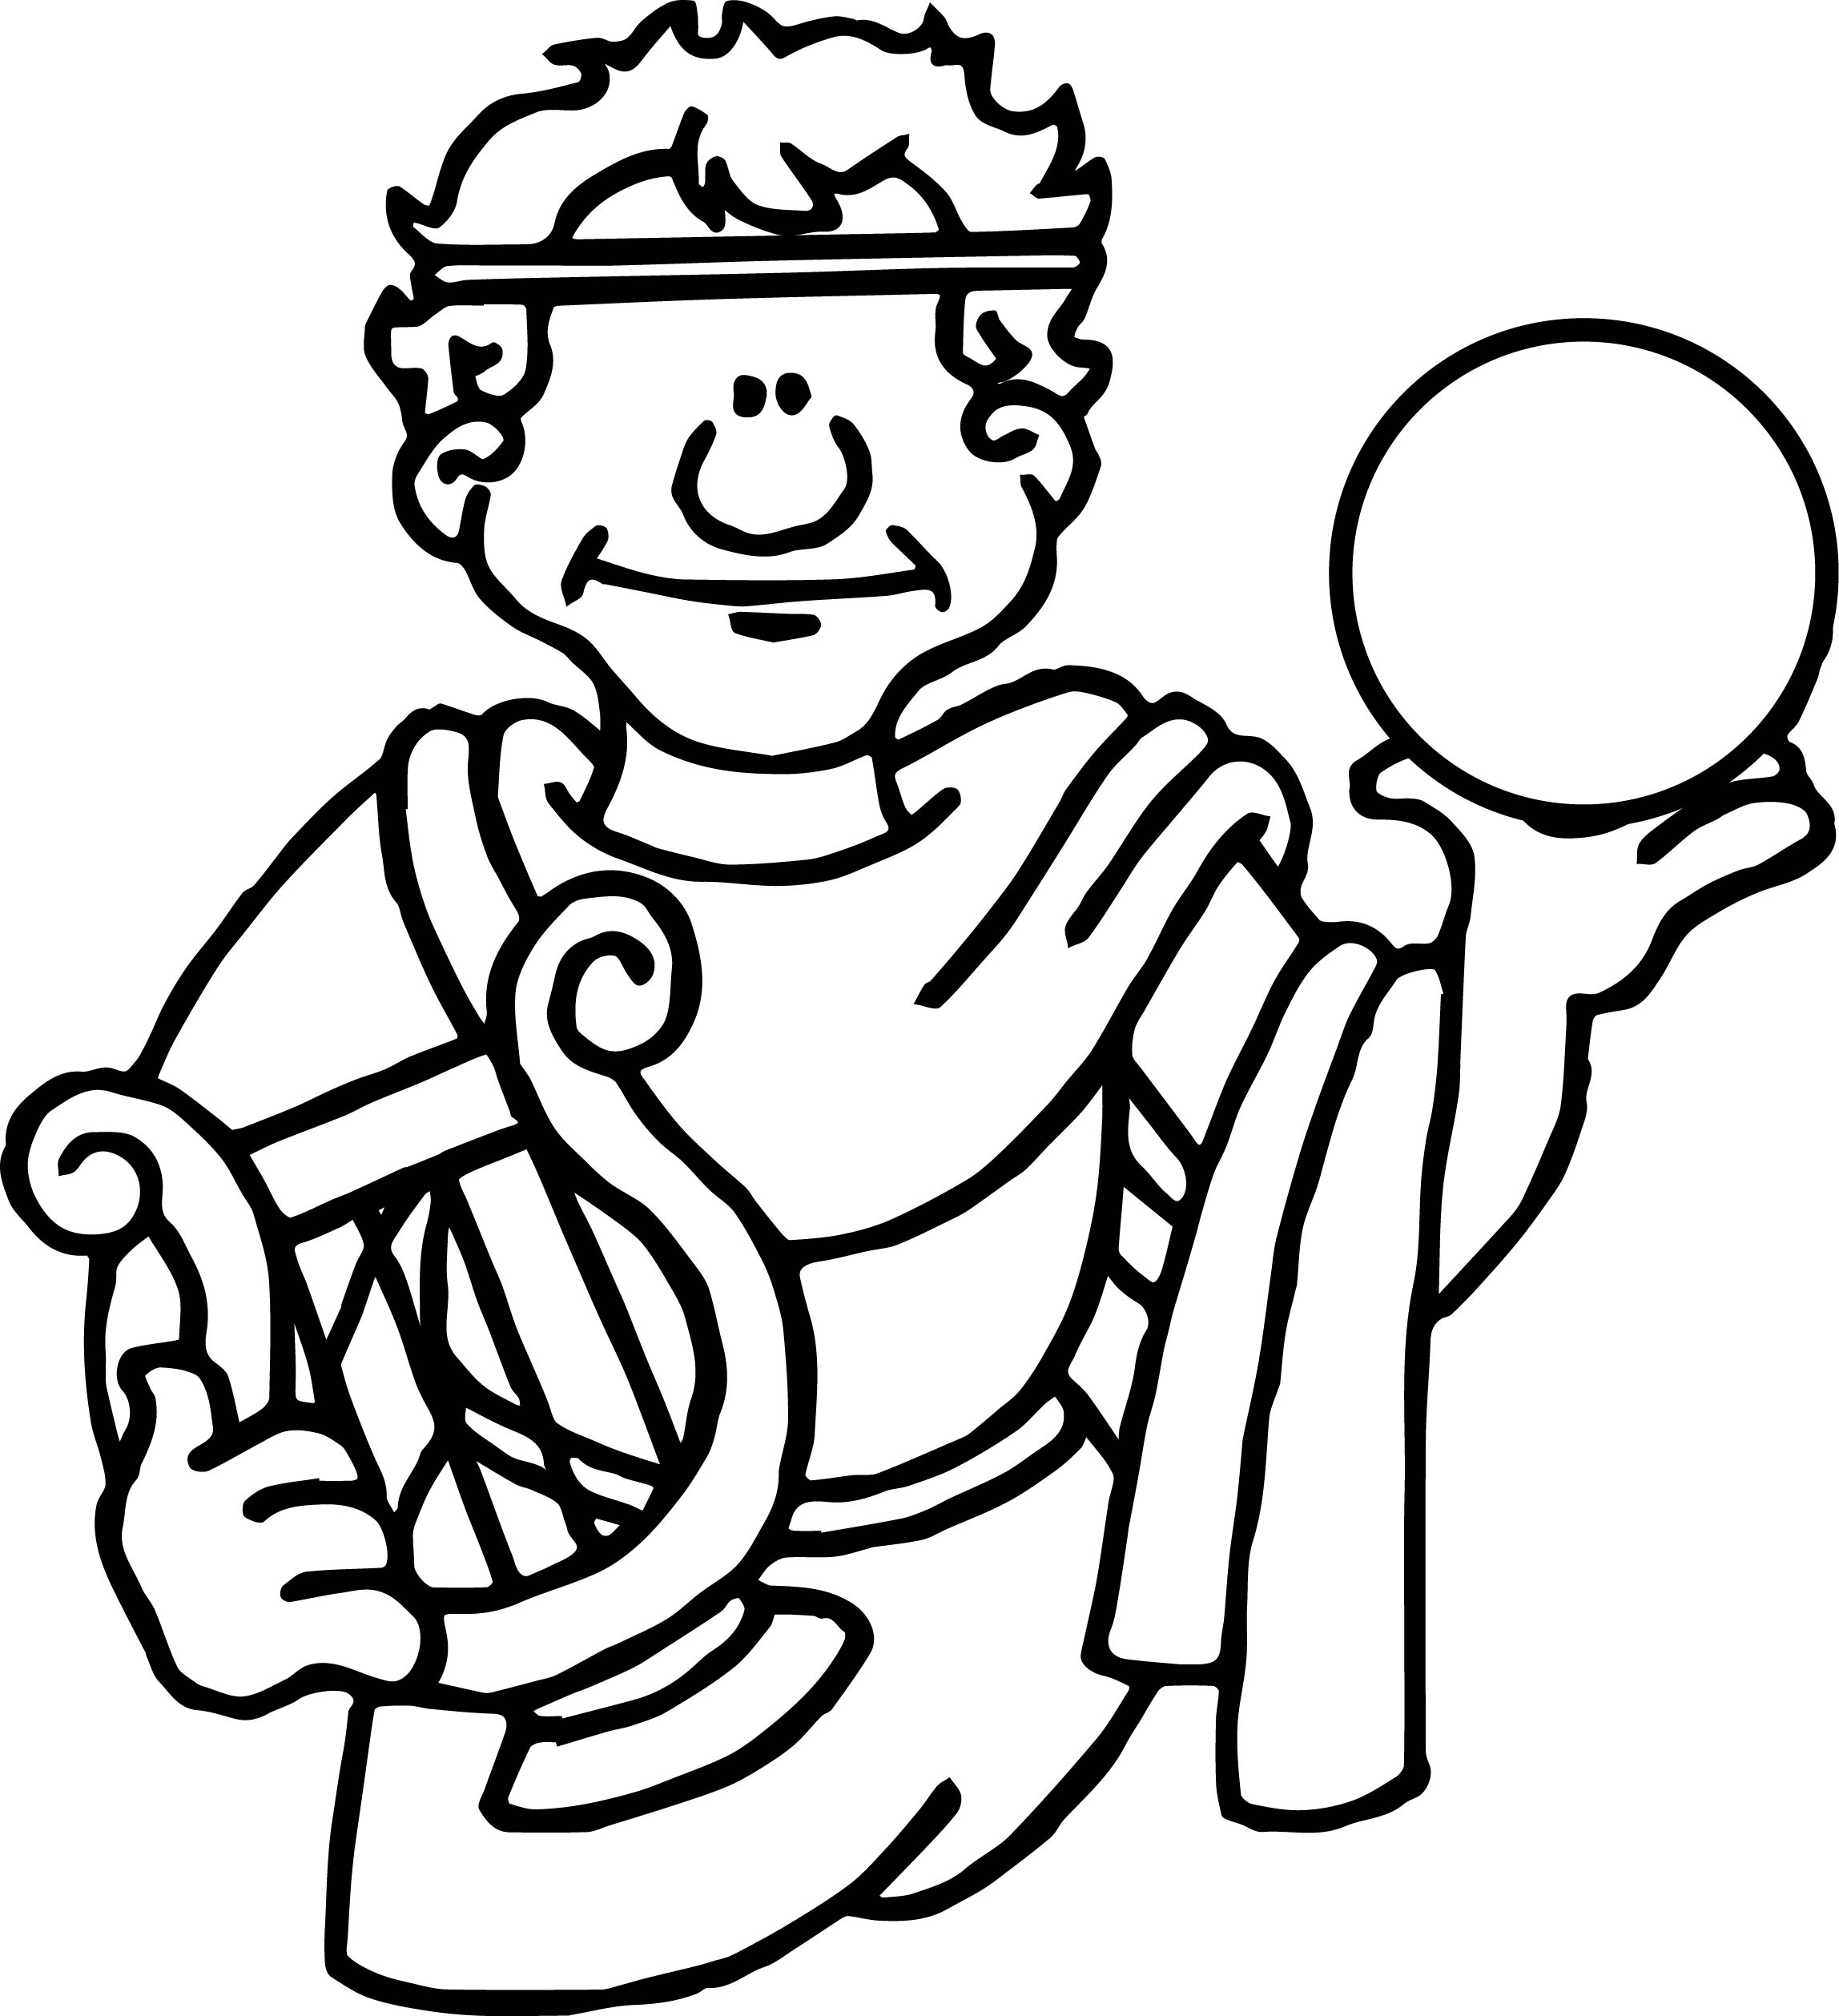 ancient roman coloring pages | Ancient Rome Holding Sphere Coloring Page | Wecoloringpage.com